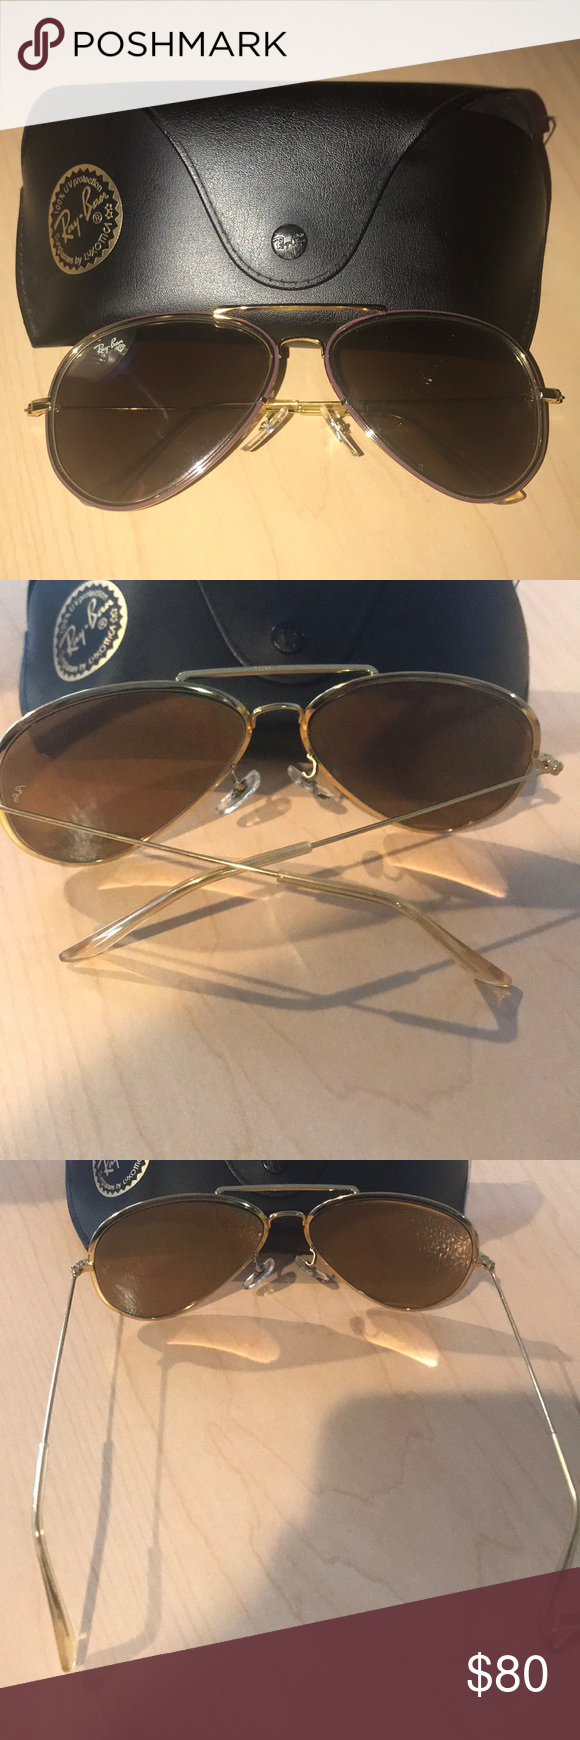 2a7cc532f8cb How To Tighten Ray Ban Frames « One More Soul